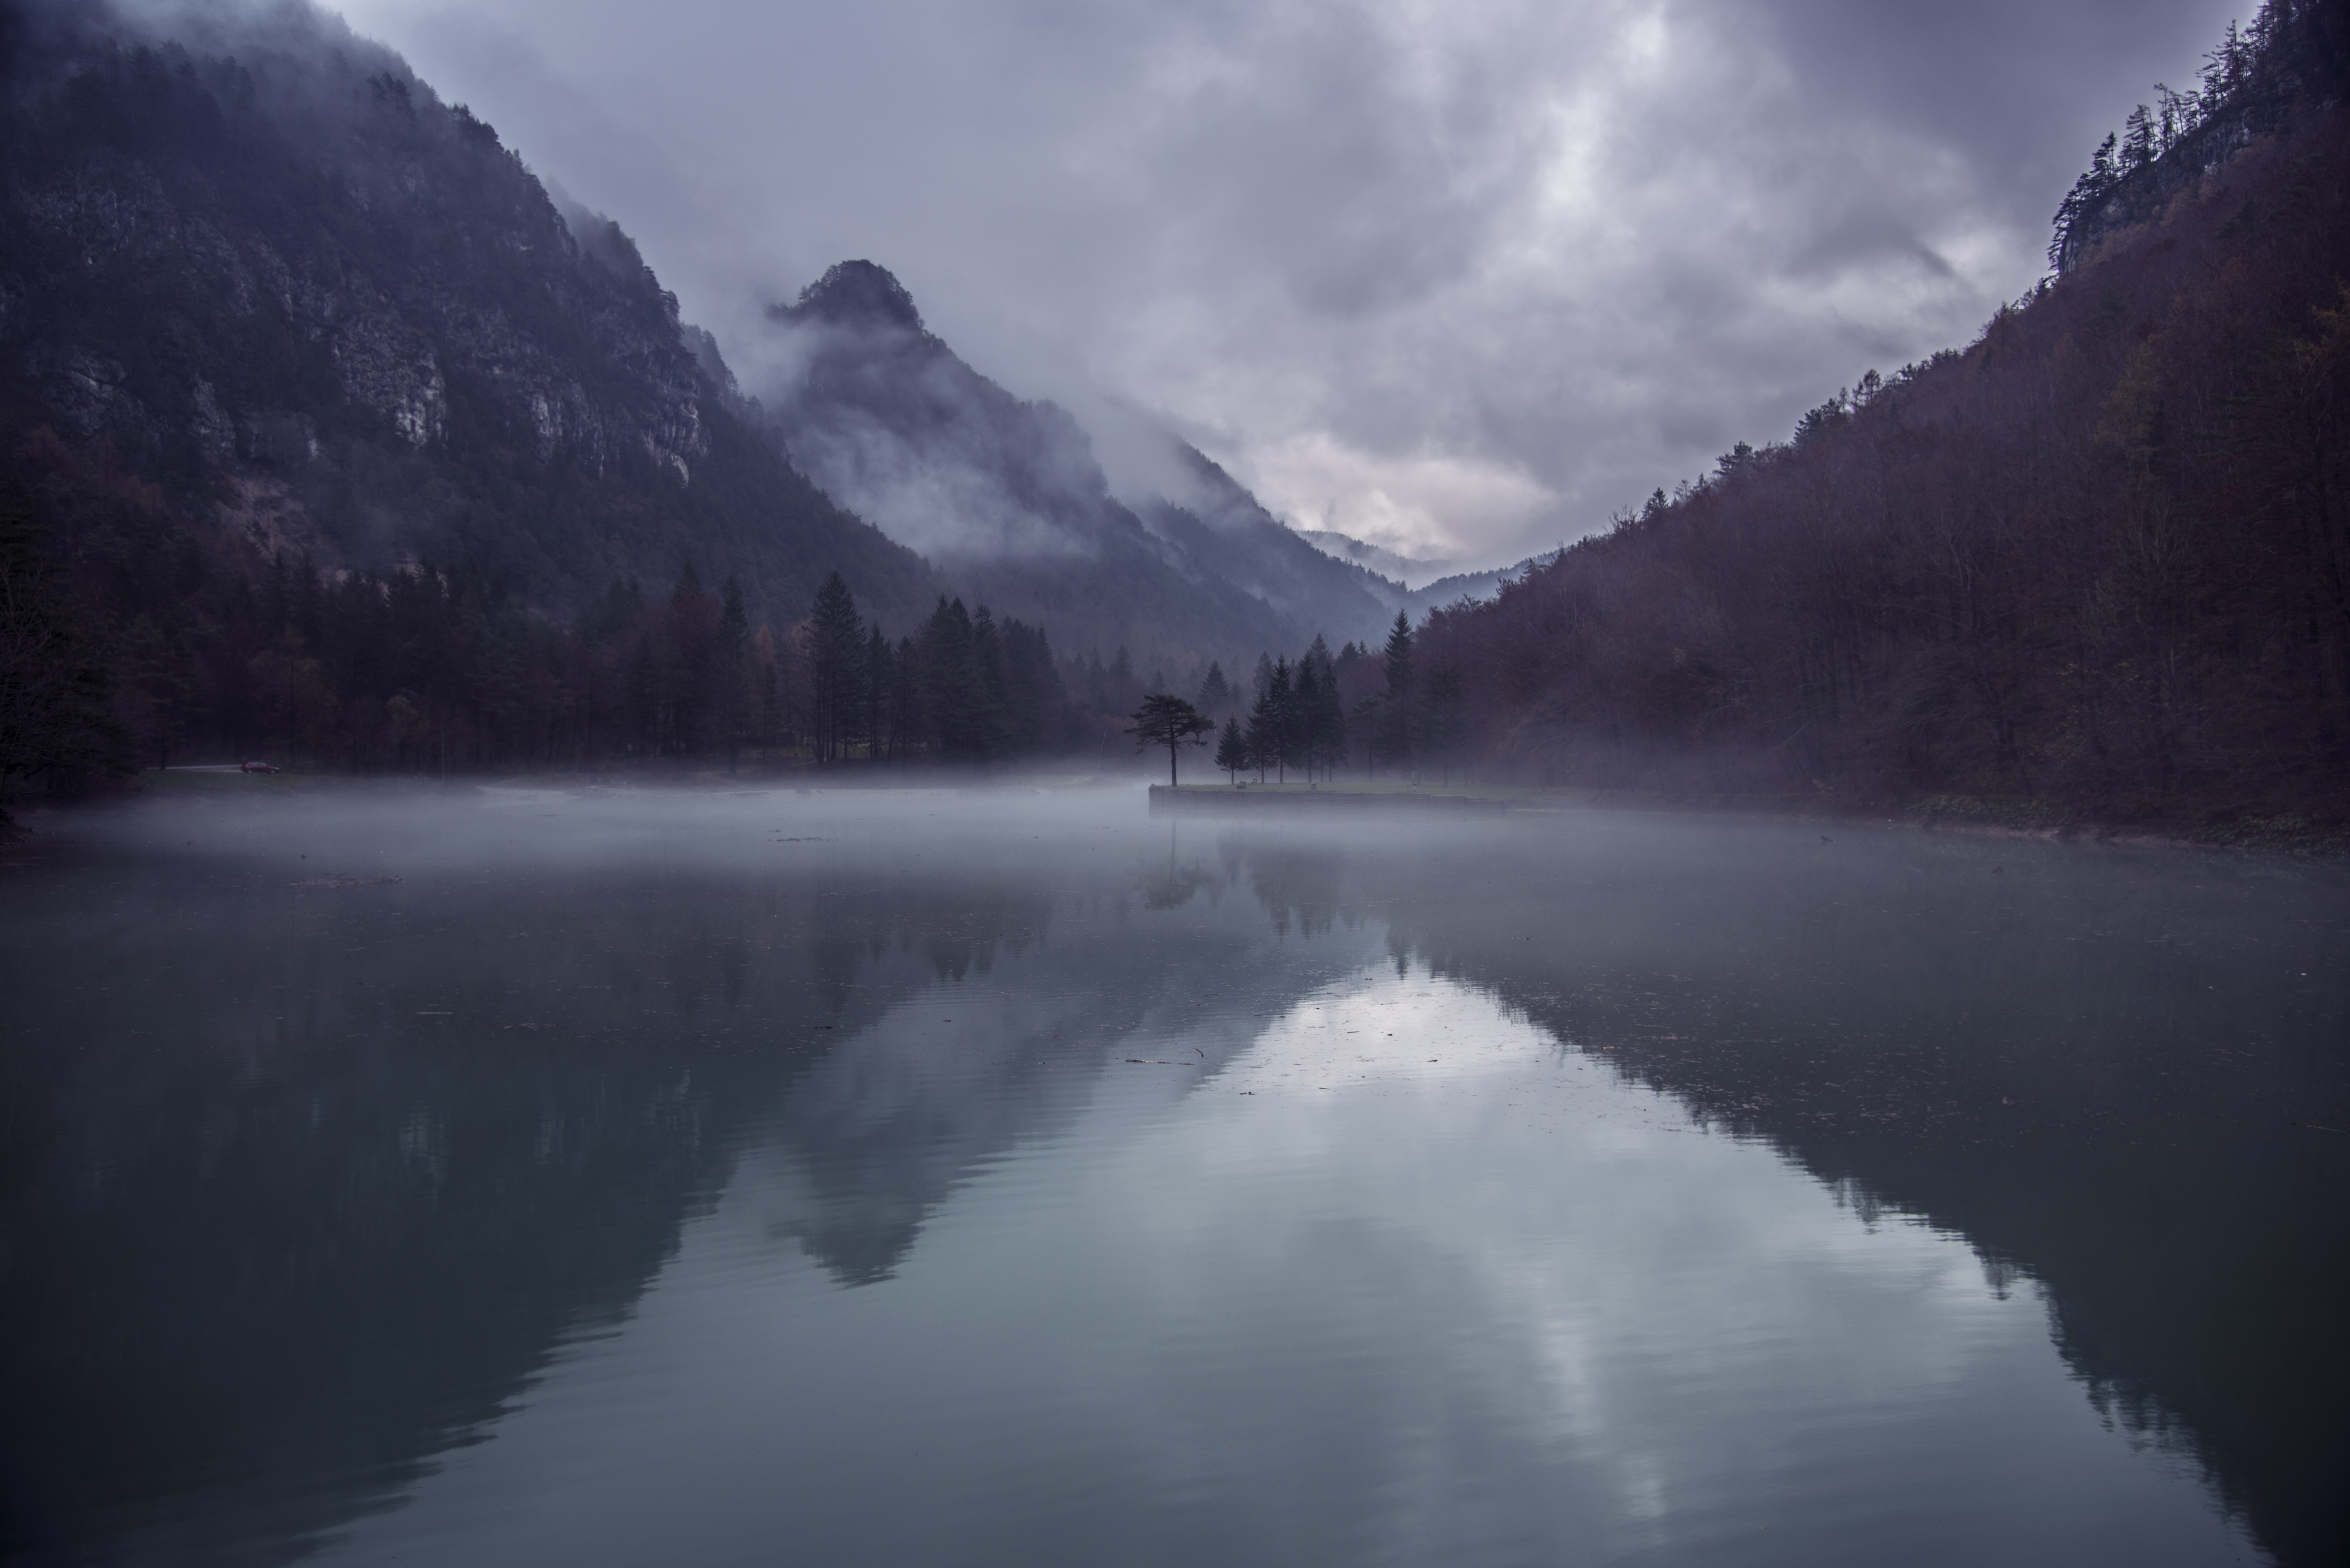 A view from the reflective surface of a lake on wooded mountains shrouded in clouds